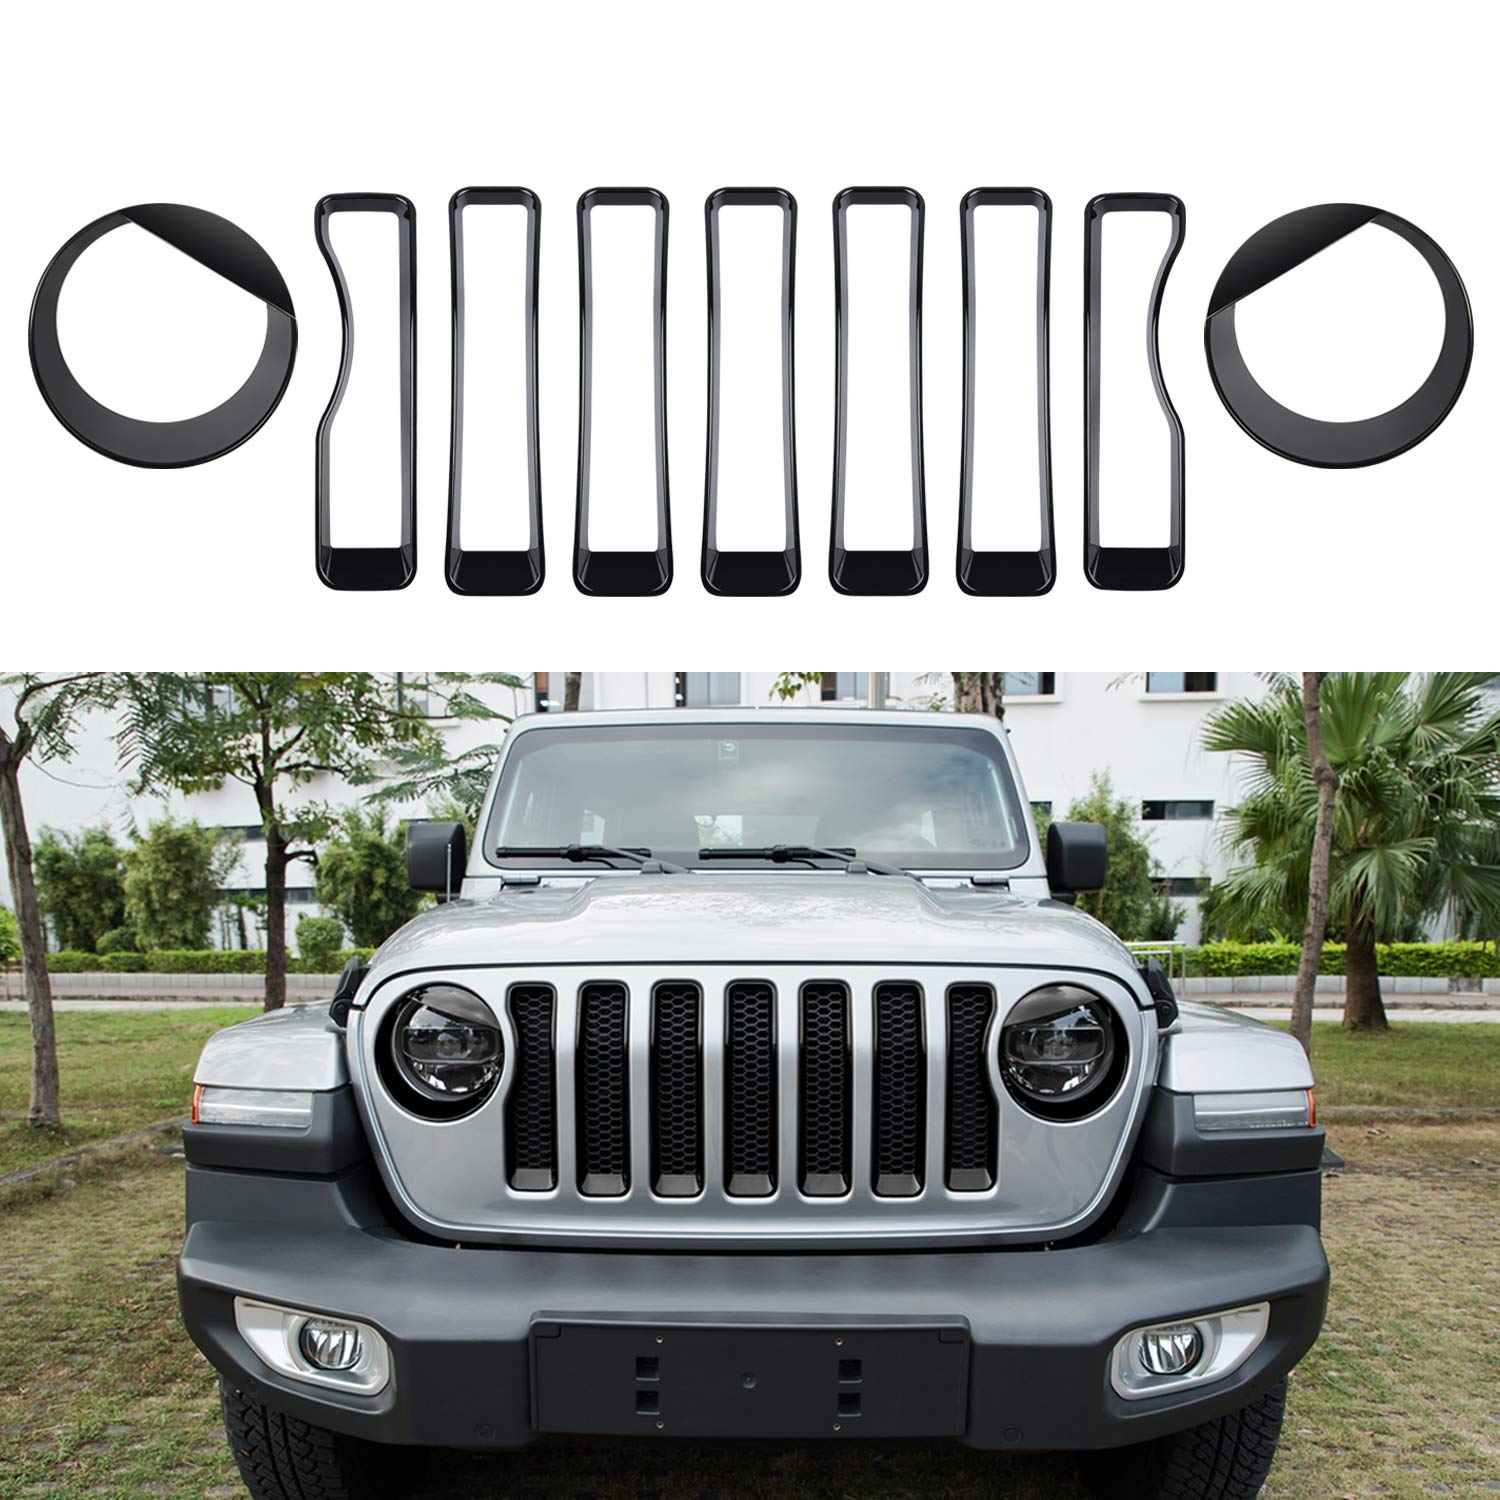 Sunluway Front Grille Inserts Guard Grill Trim Cover & Angry Bird Headlight Covers Trim for 2018 2019 Jeep Wrangler JL Sport/Sports (Pack of 9)